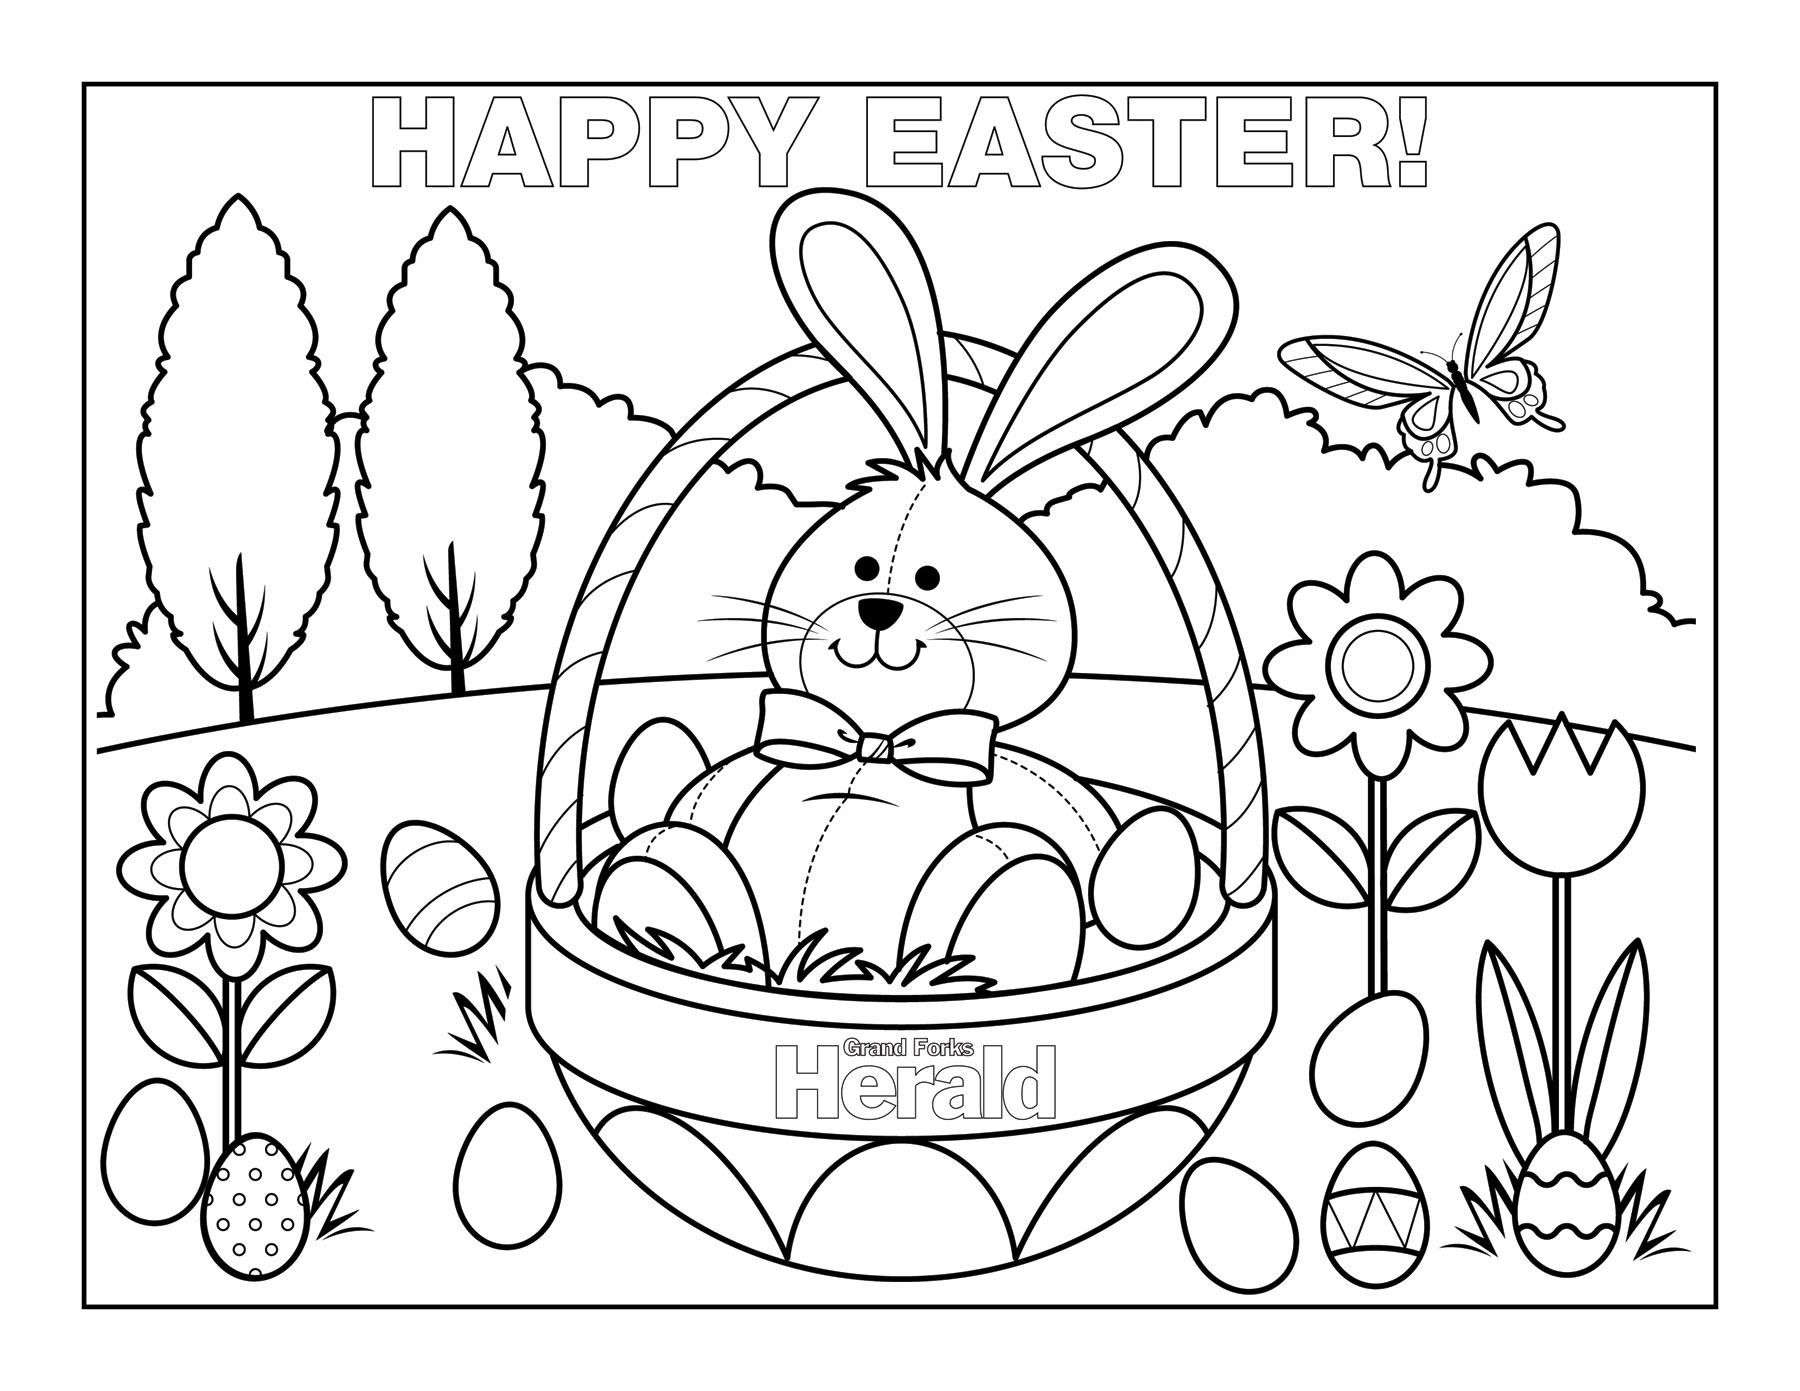 printable easter coloring pages for toddlers happy easter easter bunny colouring bunny coloring easter coloring pages for toddlers printable